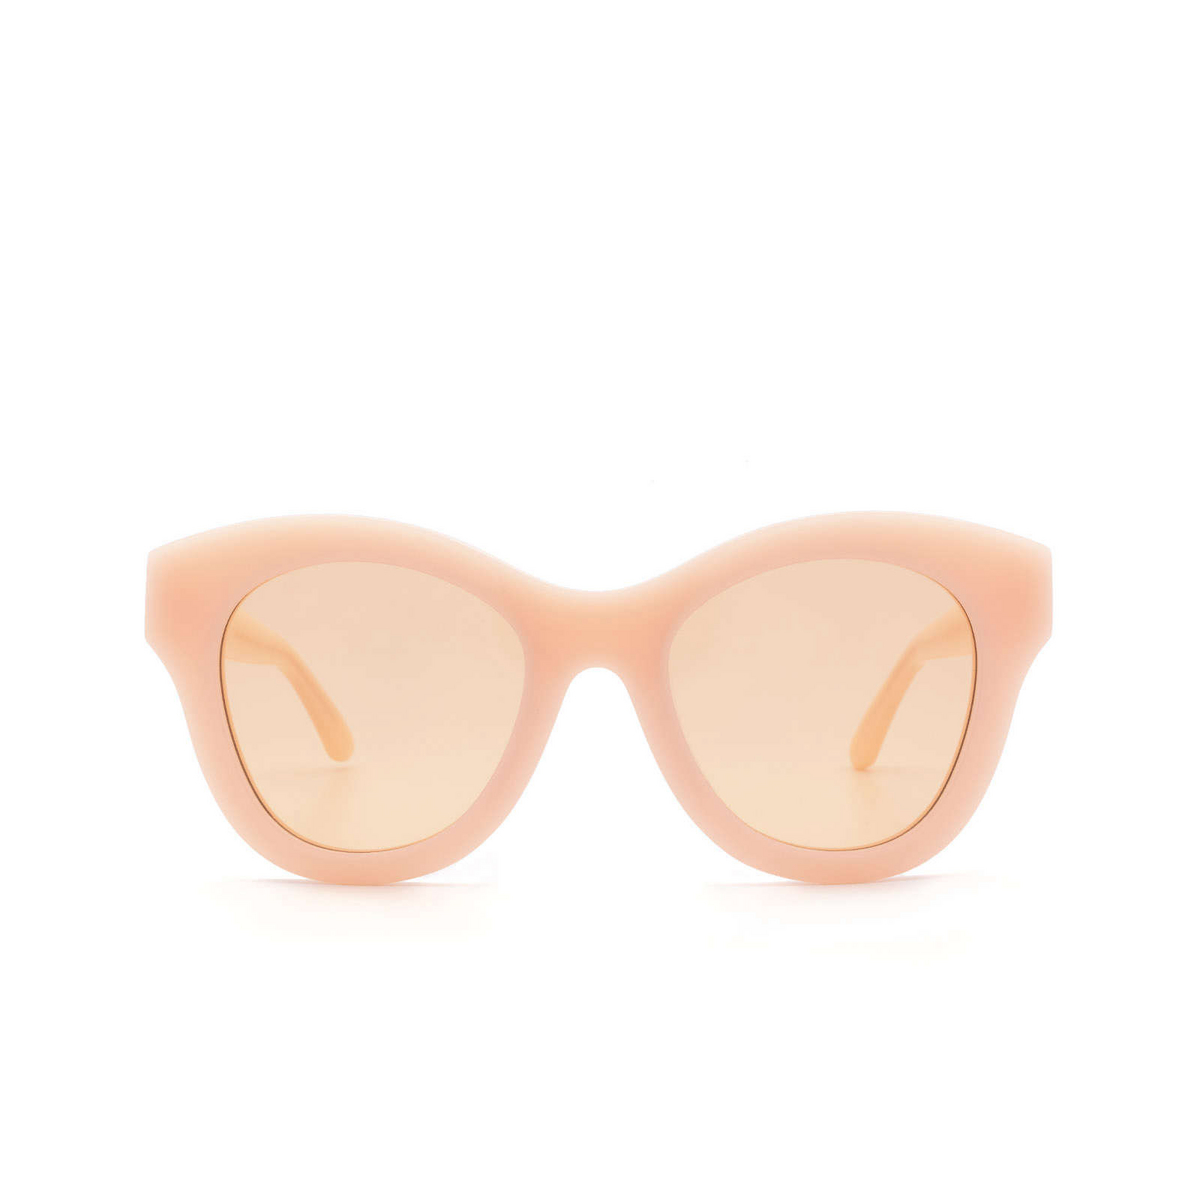 Huma® Butterfly Sunglasses: Cami color Pink 11 - front view.